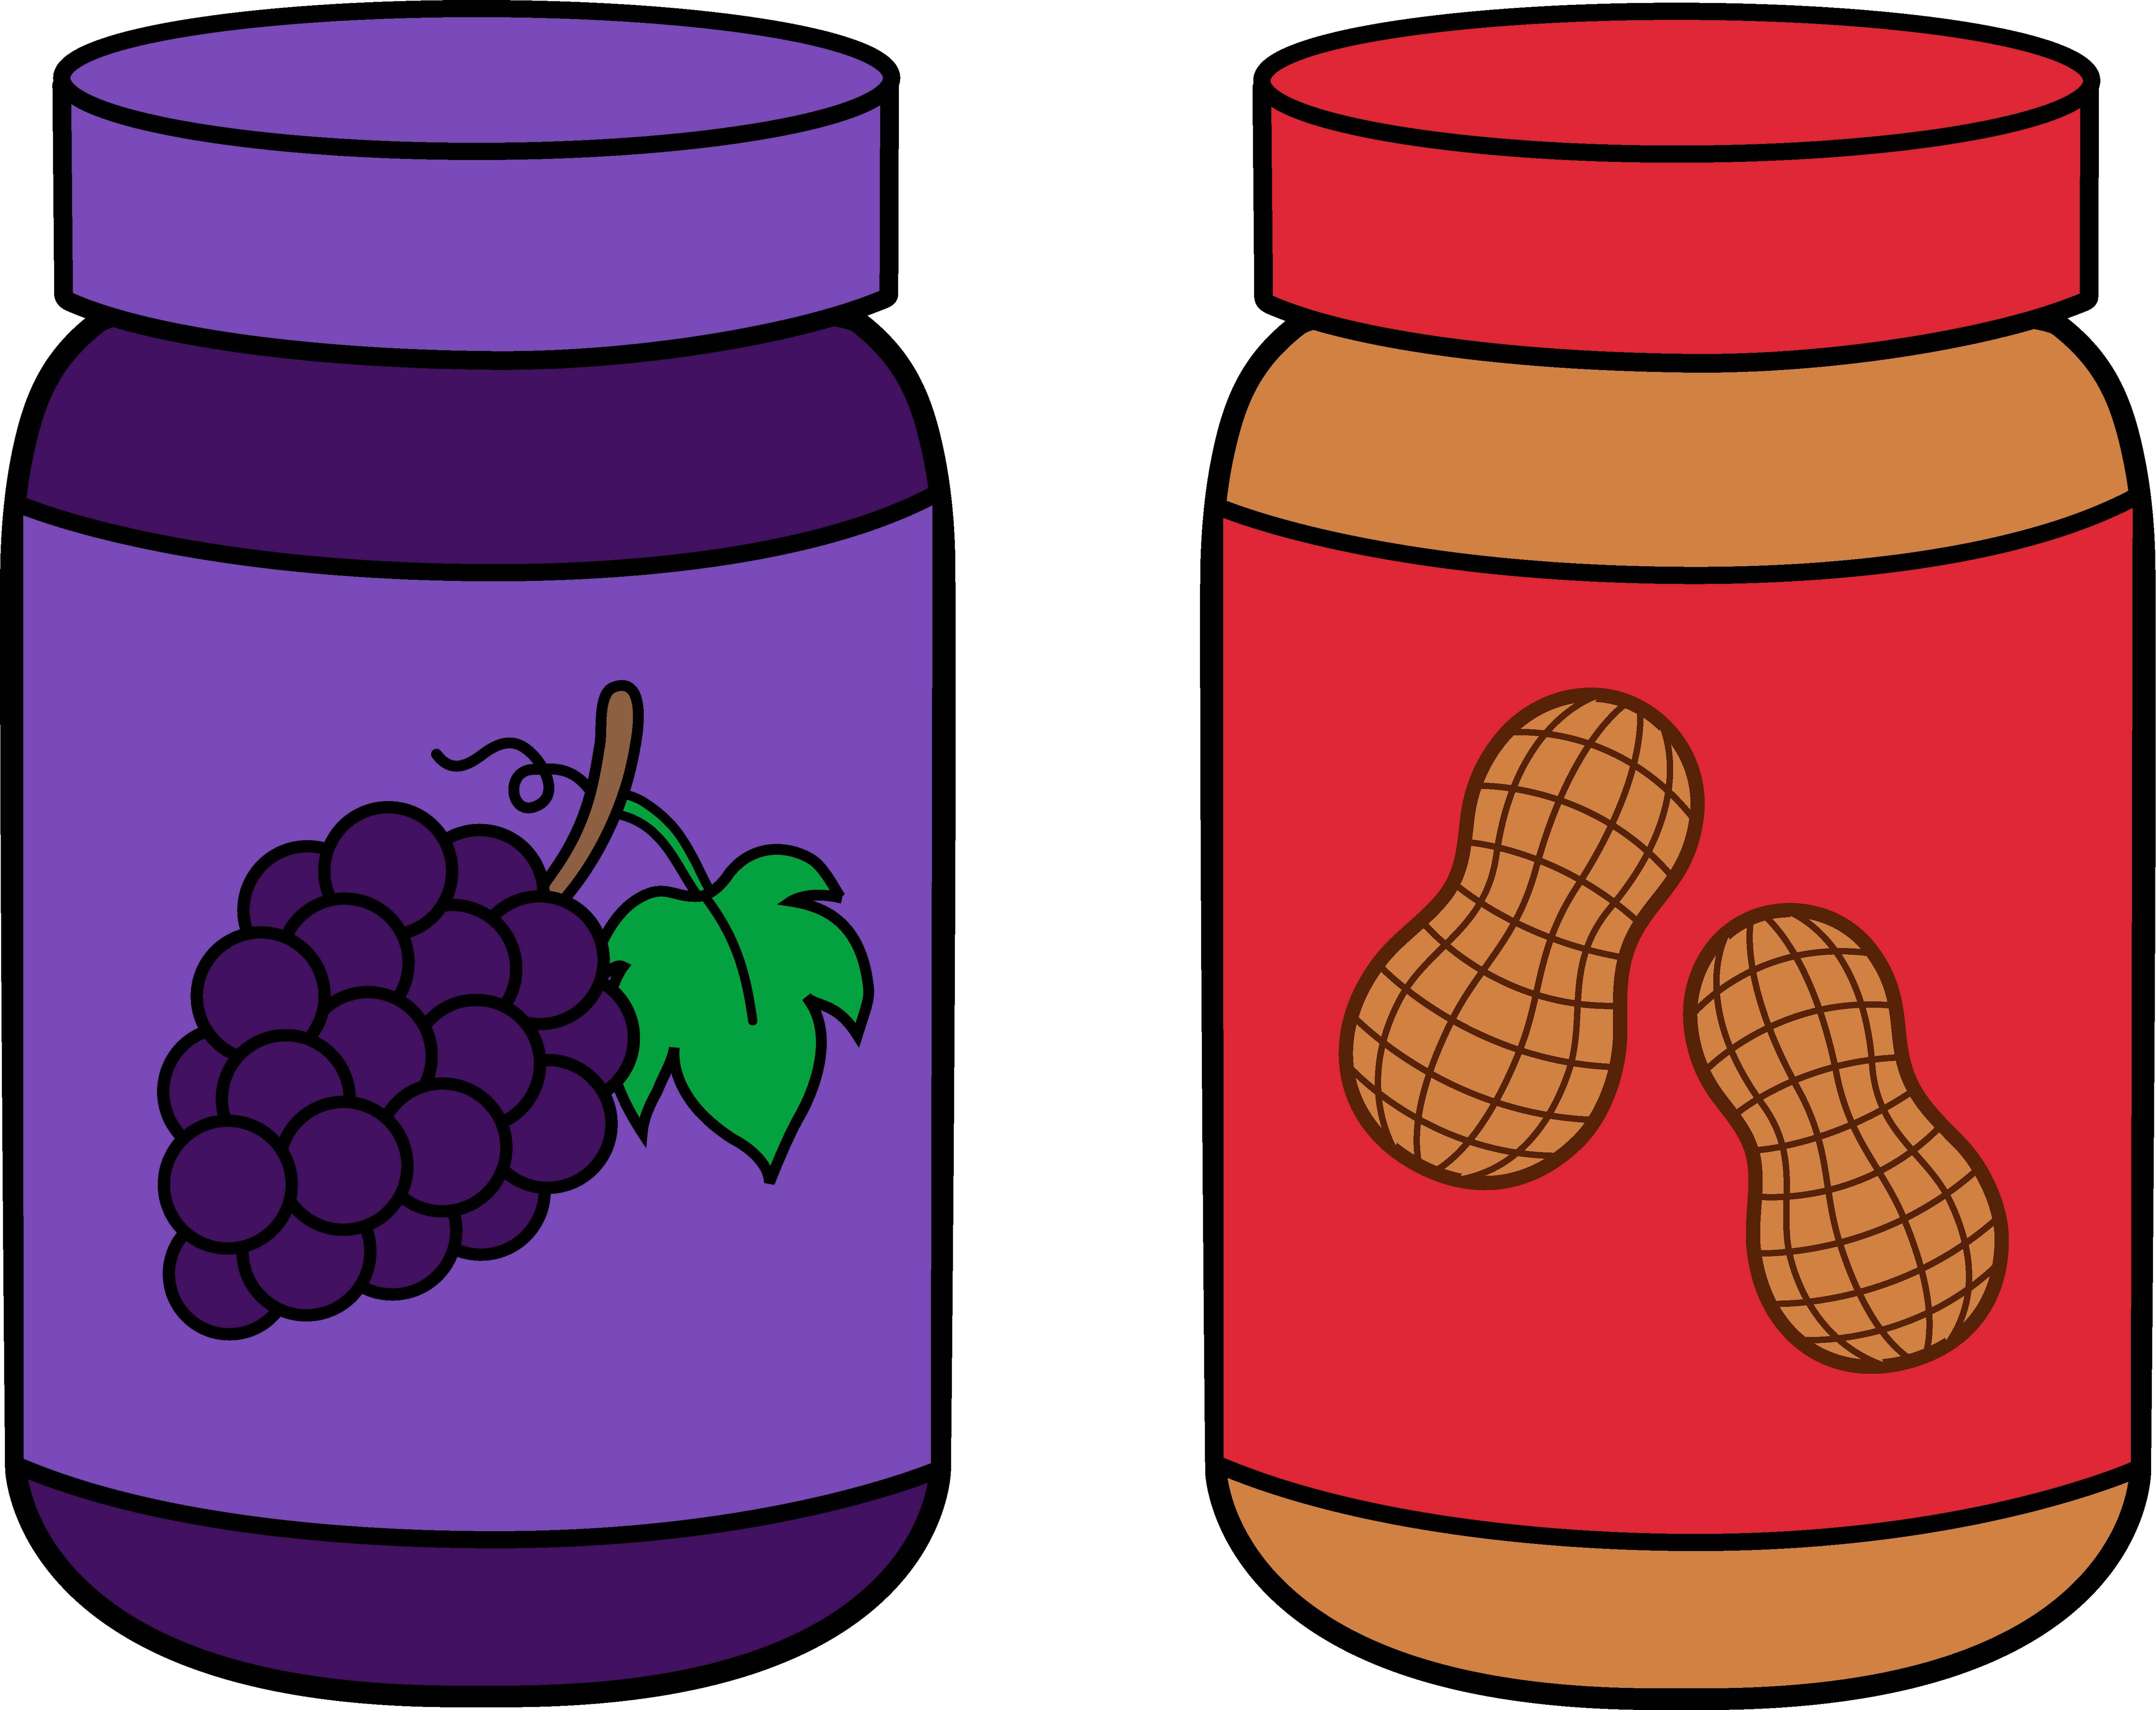 peanut butter and jelly sandwich clipart clipart panda free rh clipartpanda com peanut butter and jelly clipart peanut butter and jelly clip art free